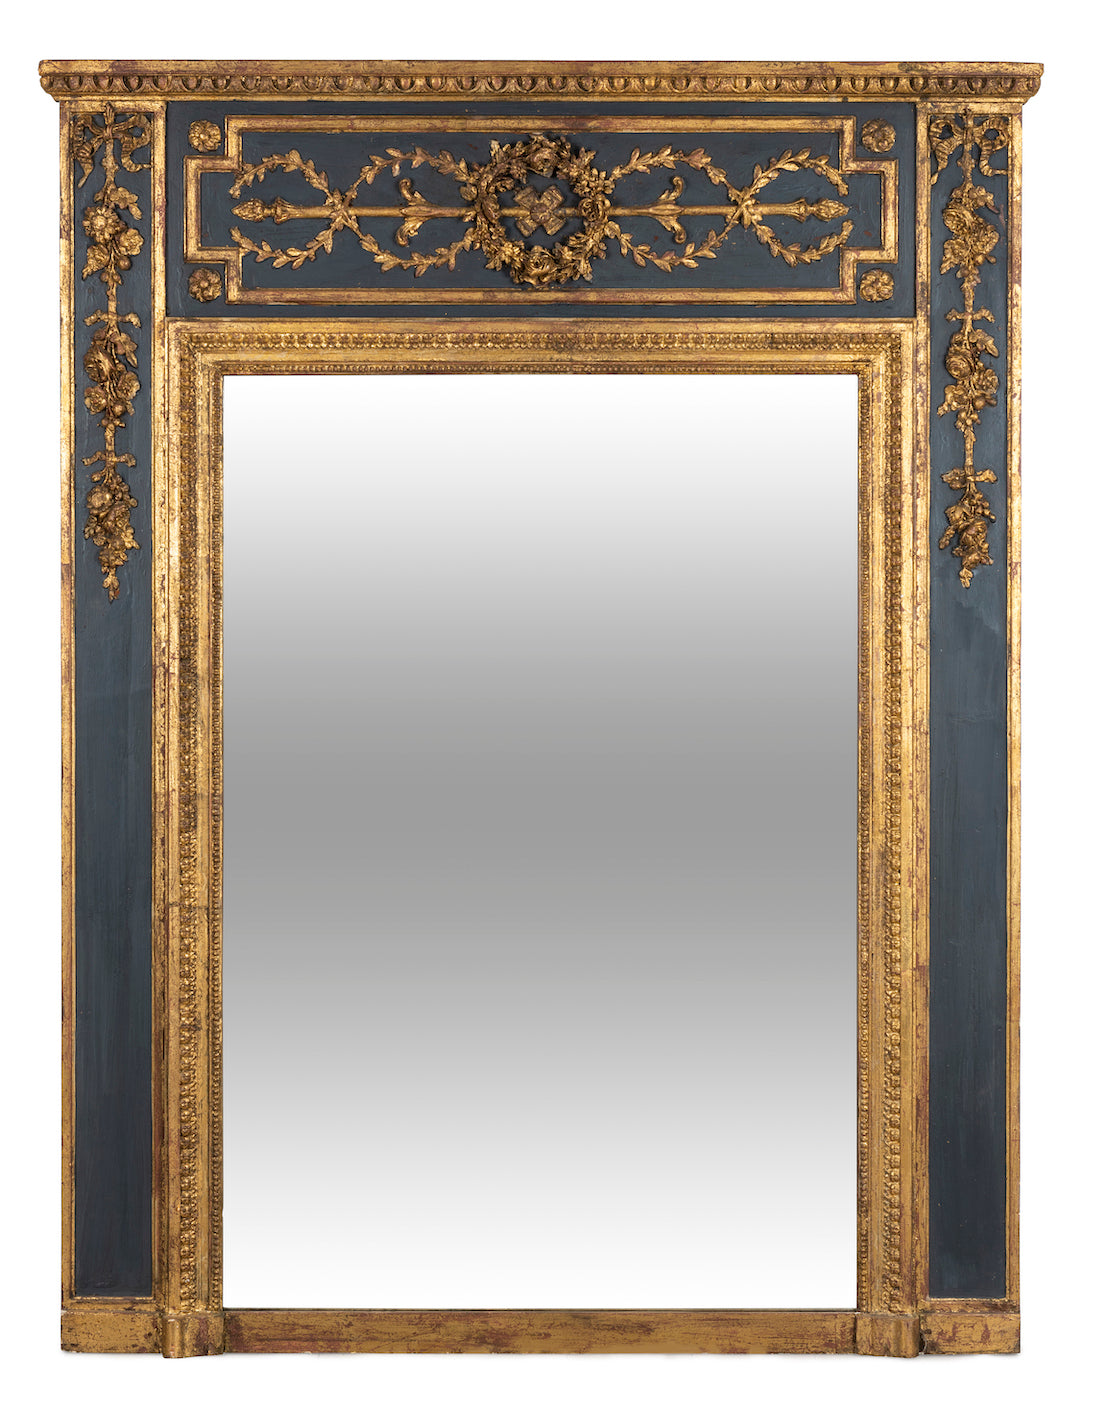 A finely carved painted and gilded overmantel mirror, French 19th Century